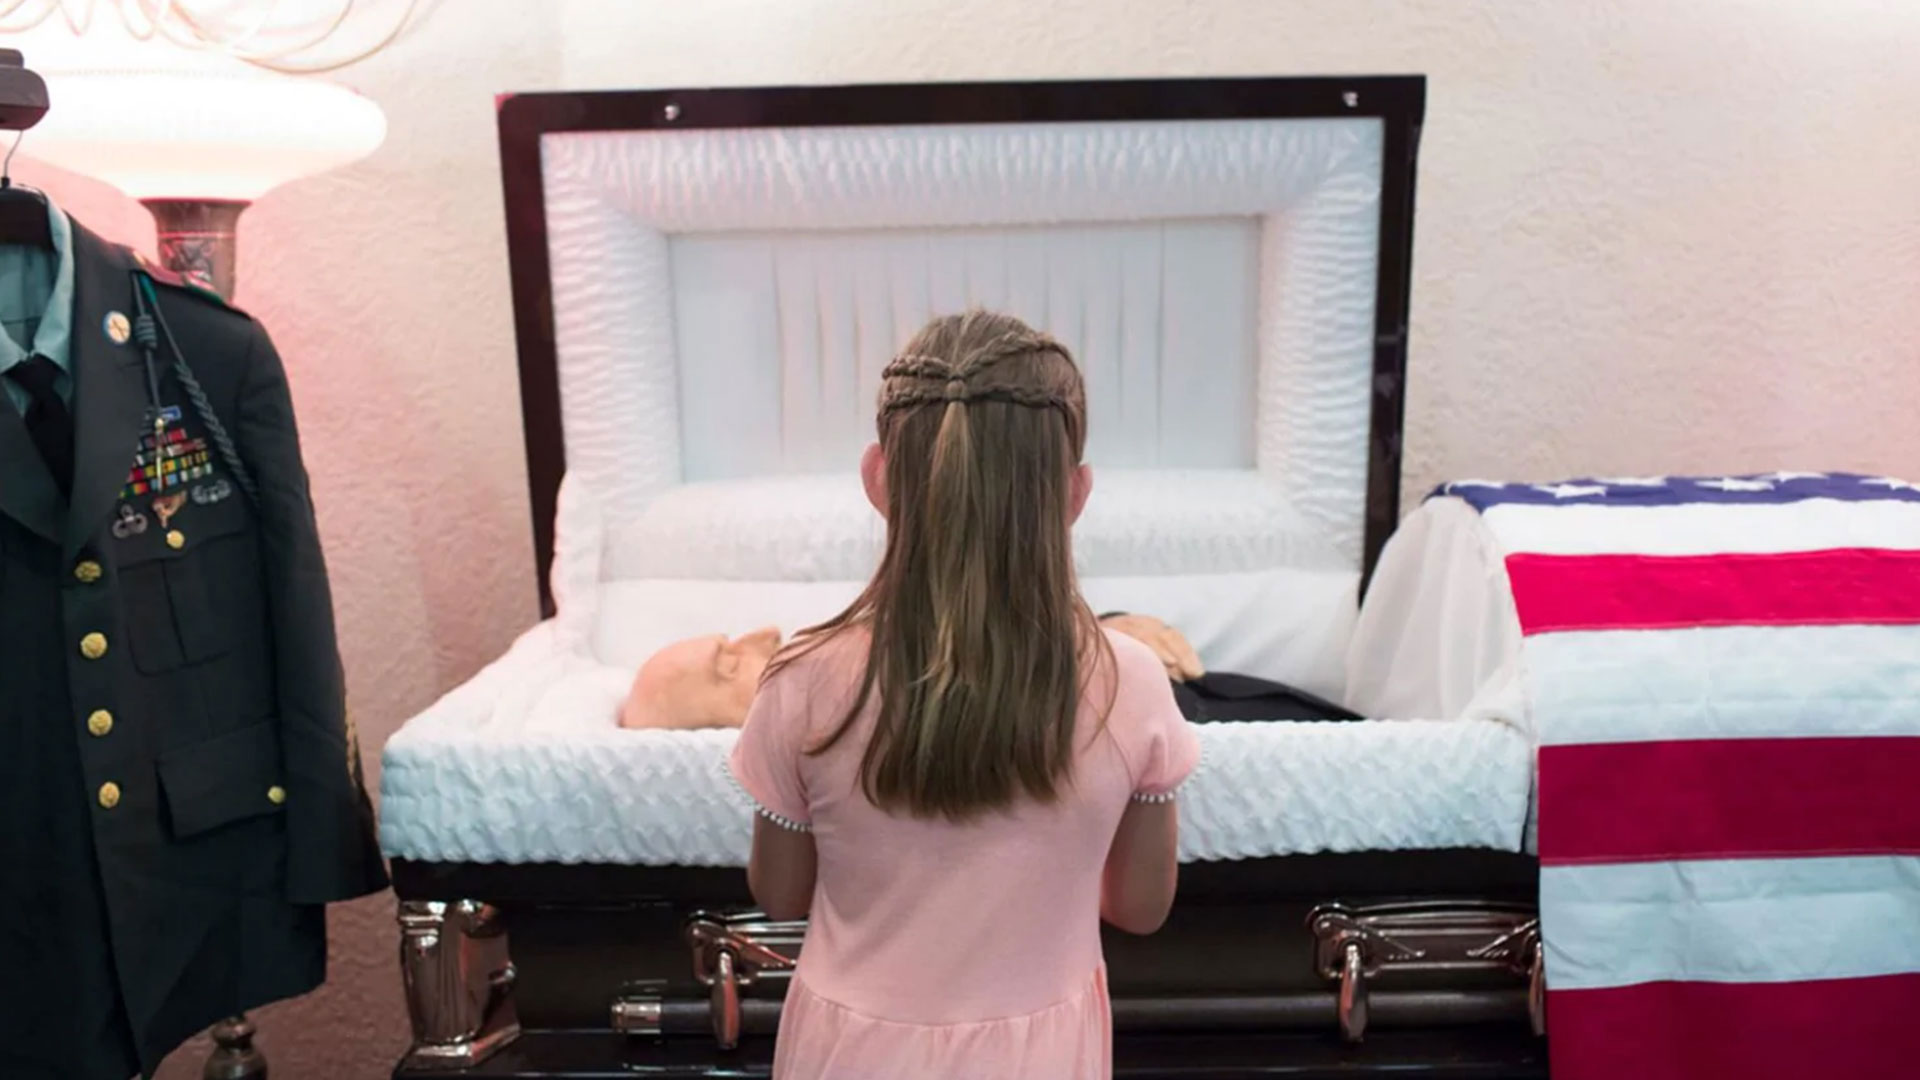 Raeleigh Mae Guzmán despide a su bisabuelo (Angus Mordant/The Washington Post)